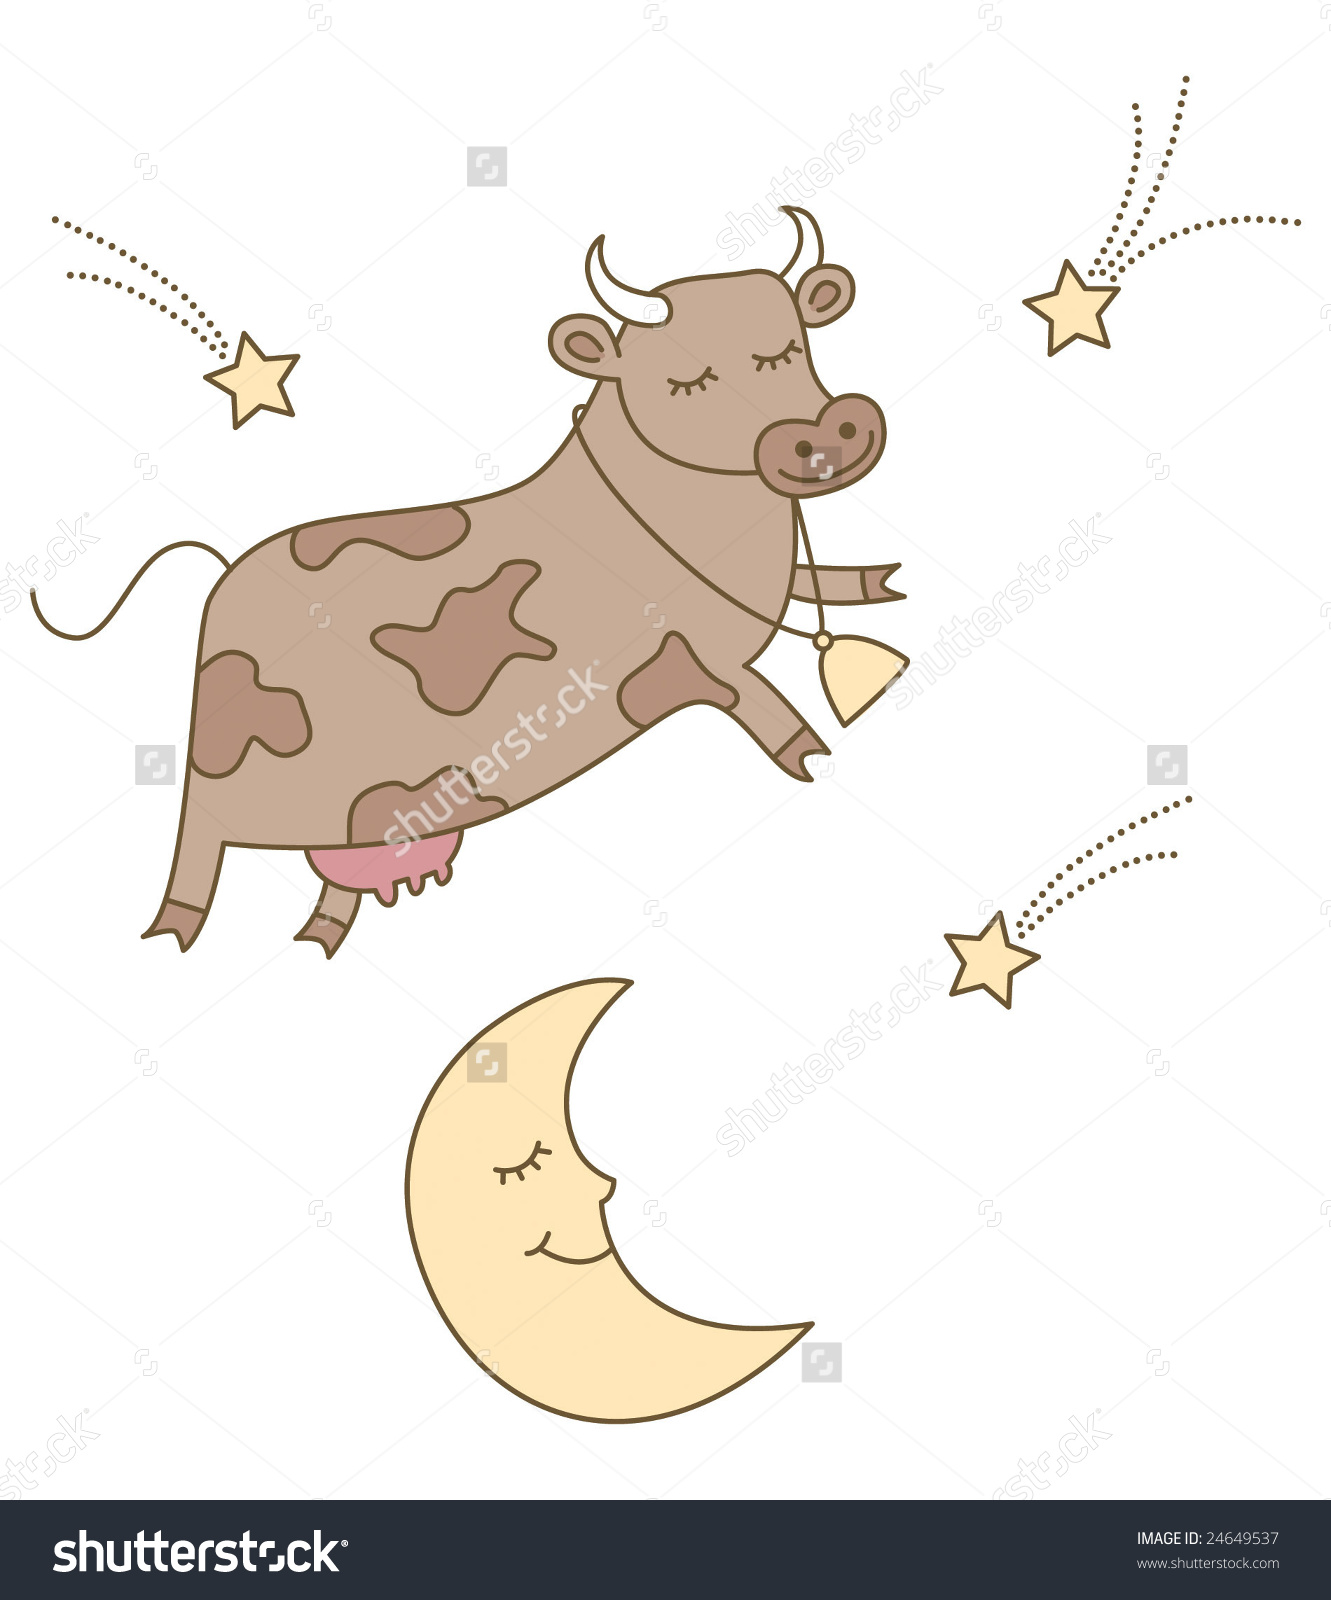 Cow Jumped Over Moon Illustration Perfect Stock Vector 24649537.